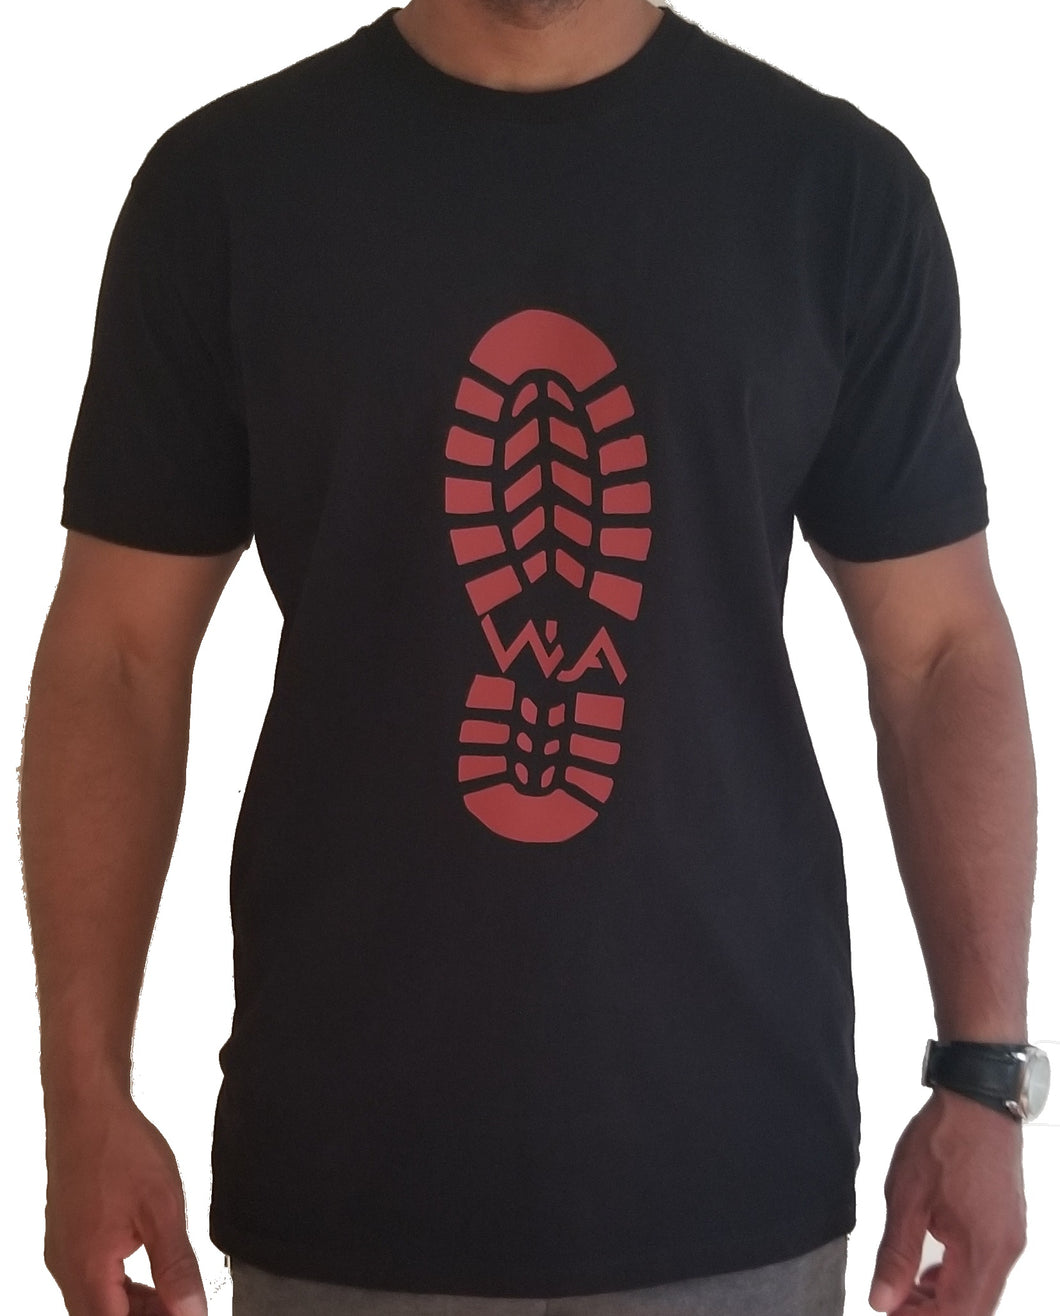 Front view of black tee with brown boot print printed on front